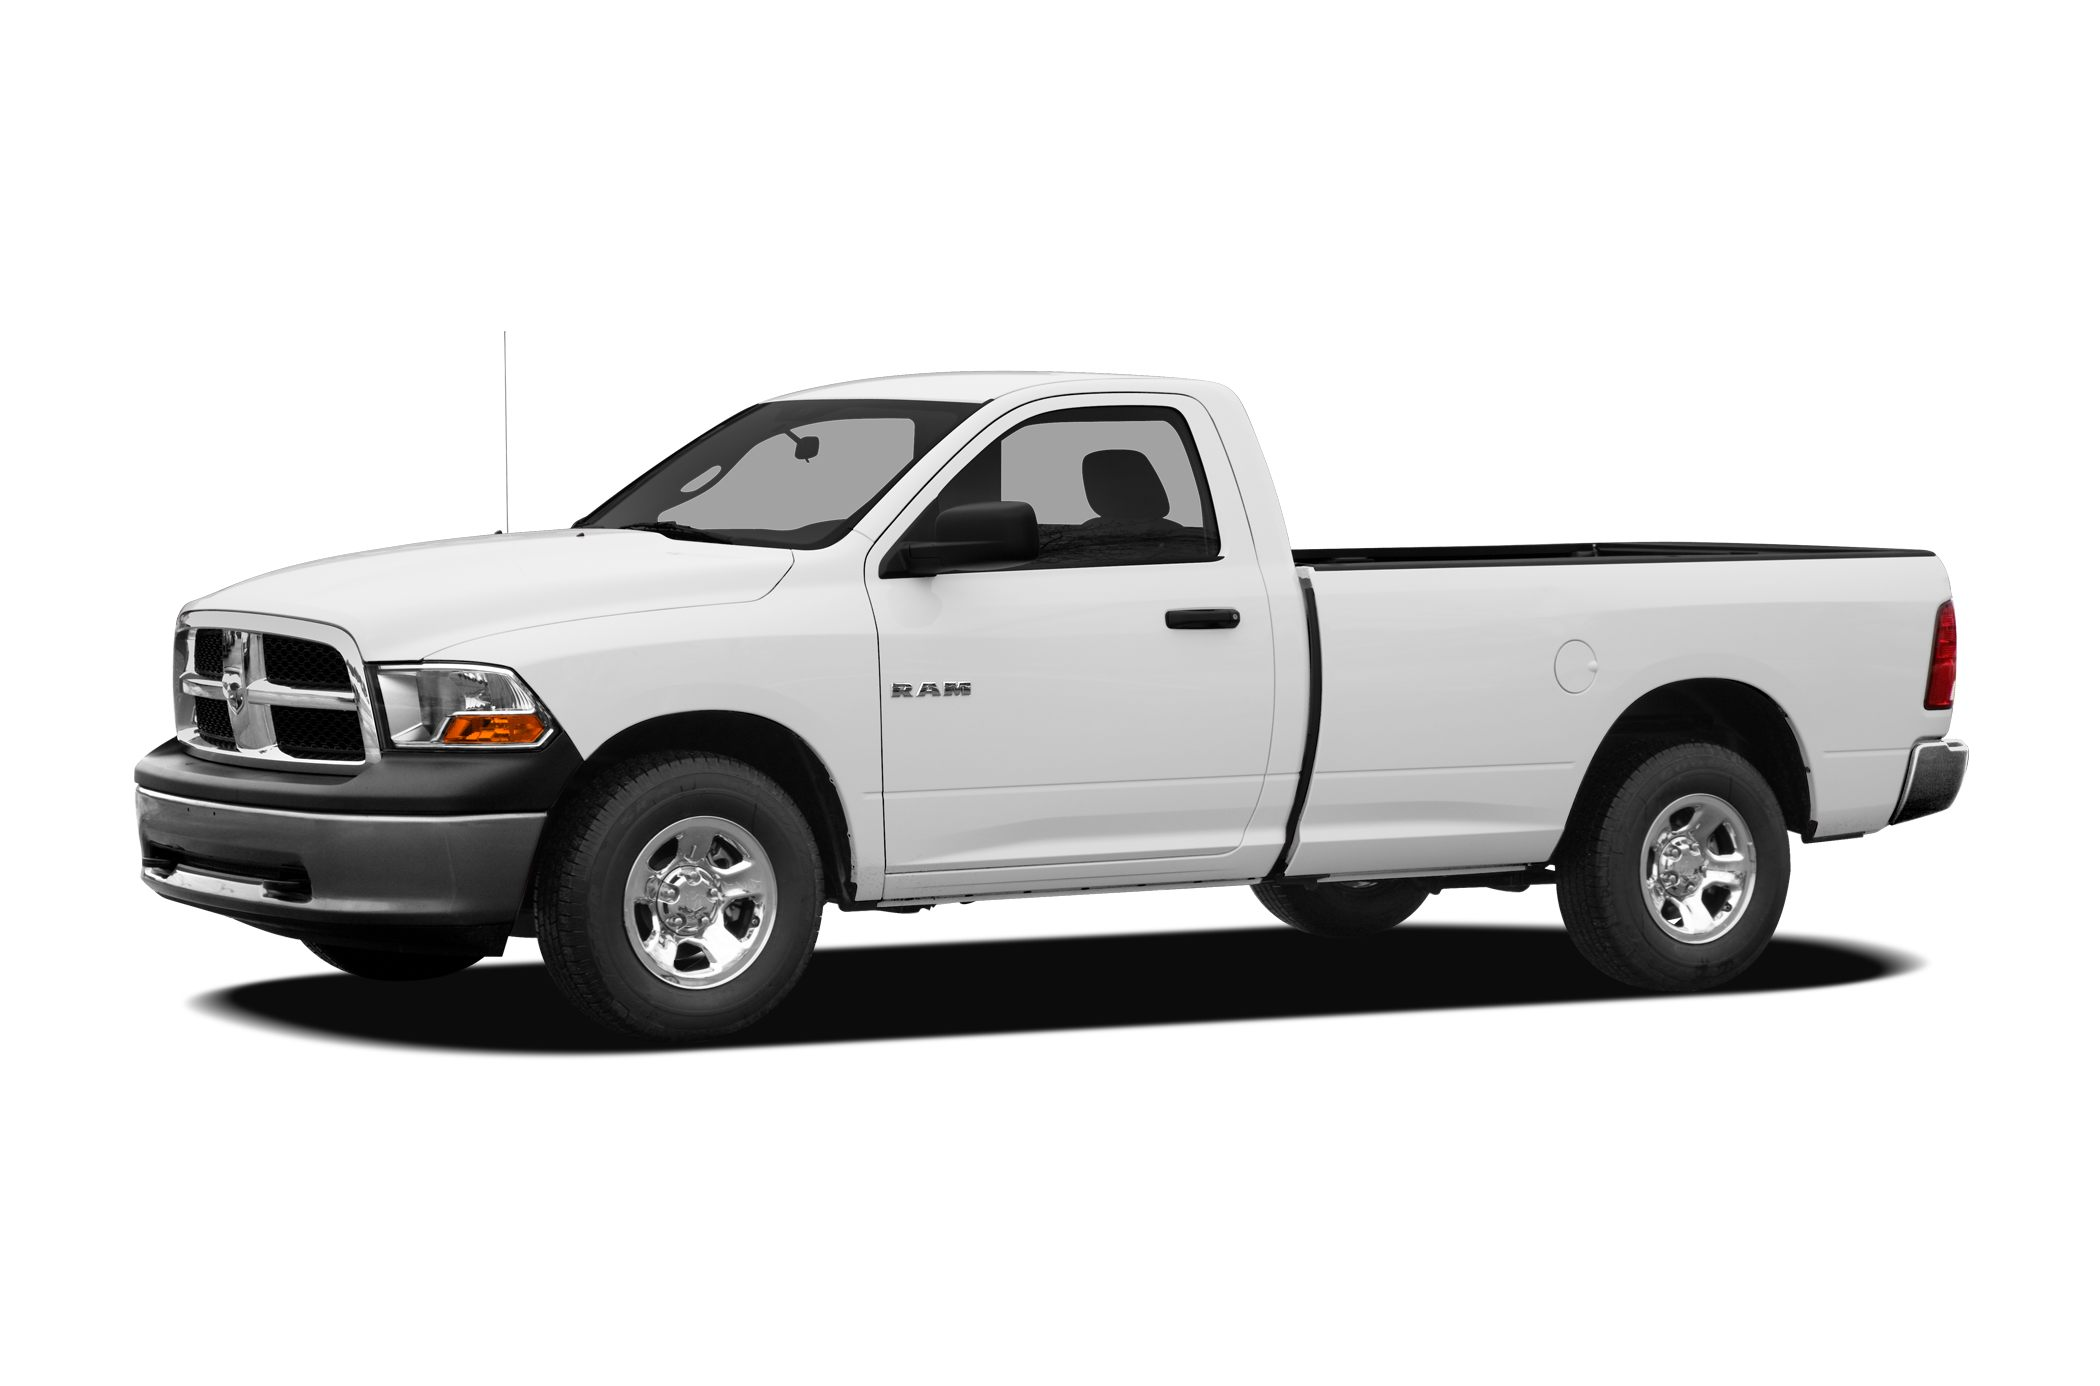 2009 Dodge Ram 1500 SLT Crew Cab Pickup for sale in College Station for $16,995 with 106,119 miles.